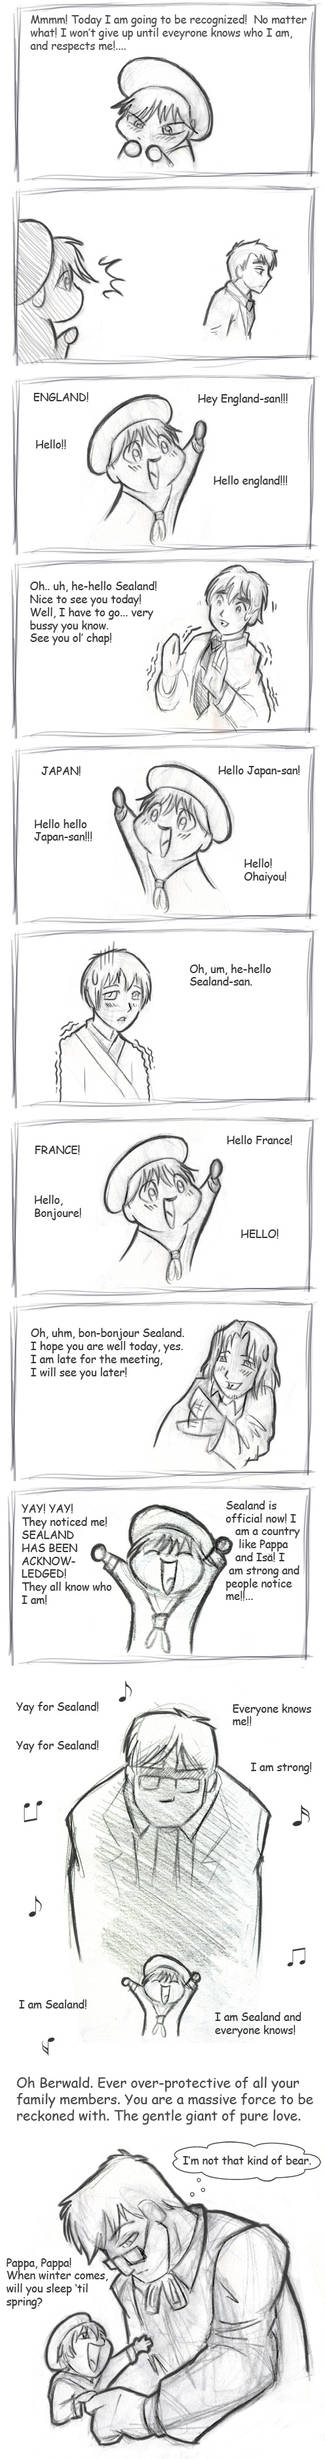 Sealand Acknowledged